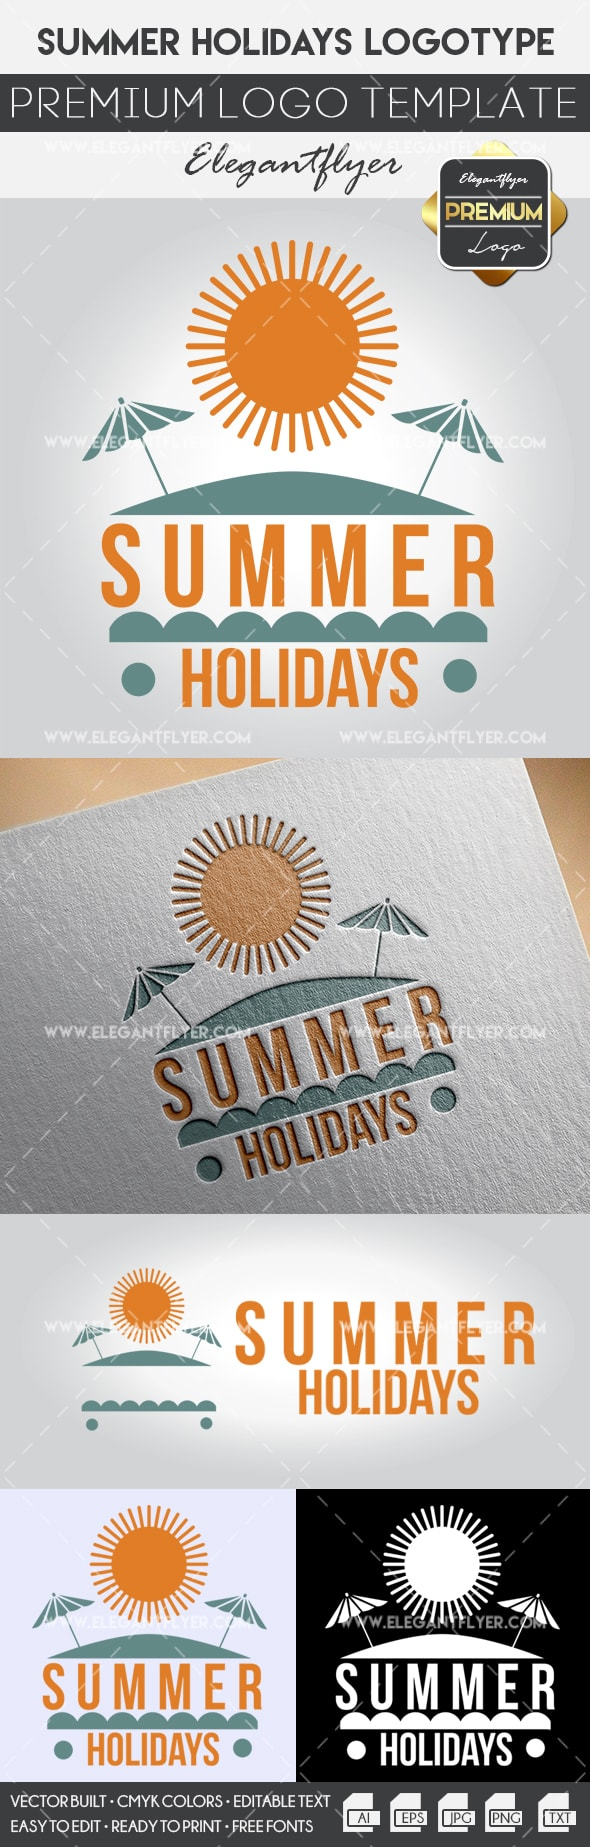 Summer Holidays – Premium Logo Template